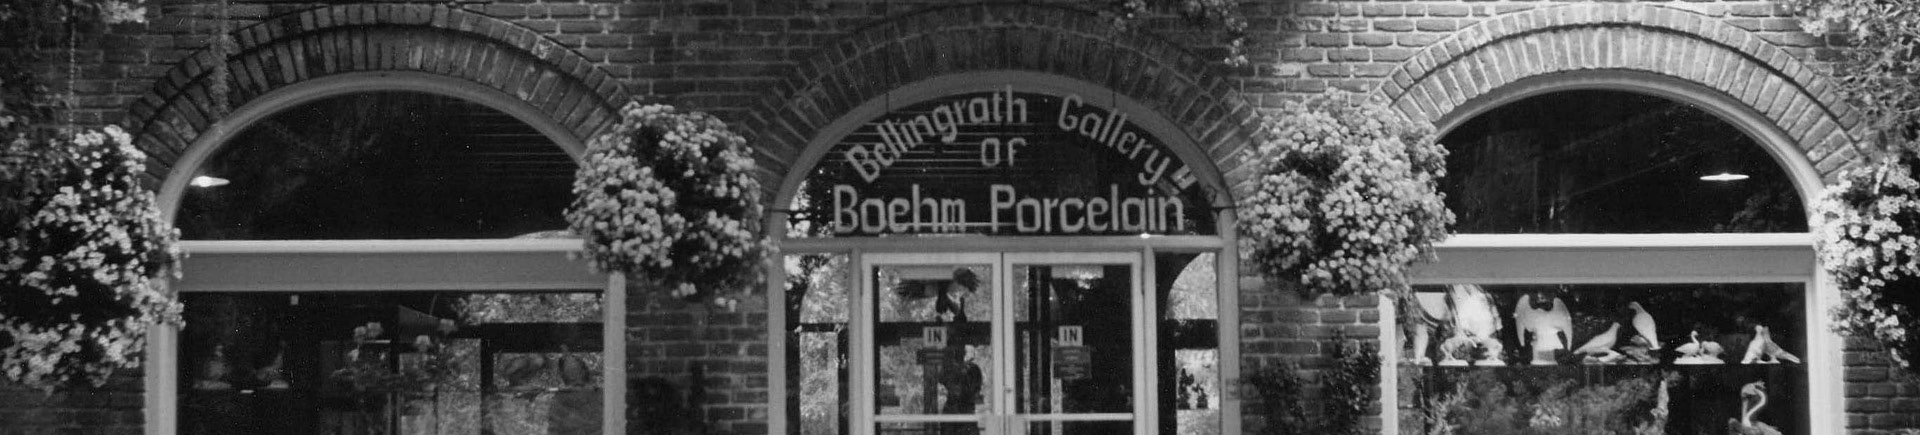 Garage Becomes Gallery Of Boehm Porcelain